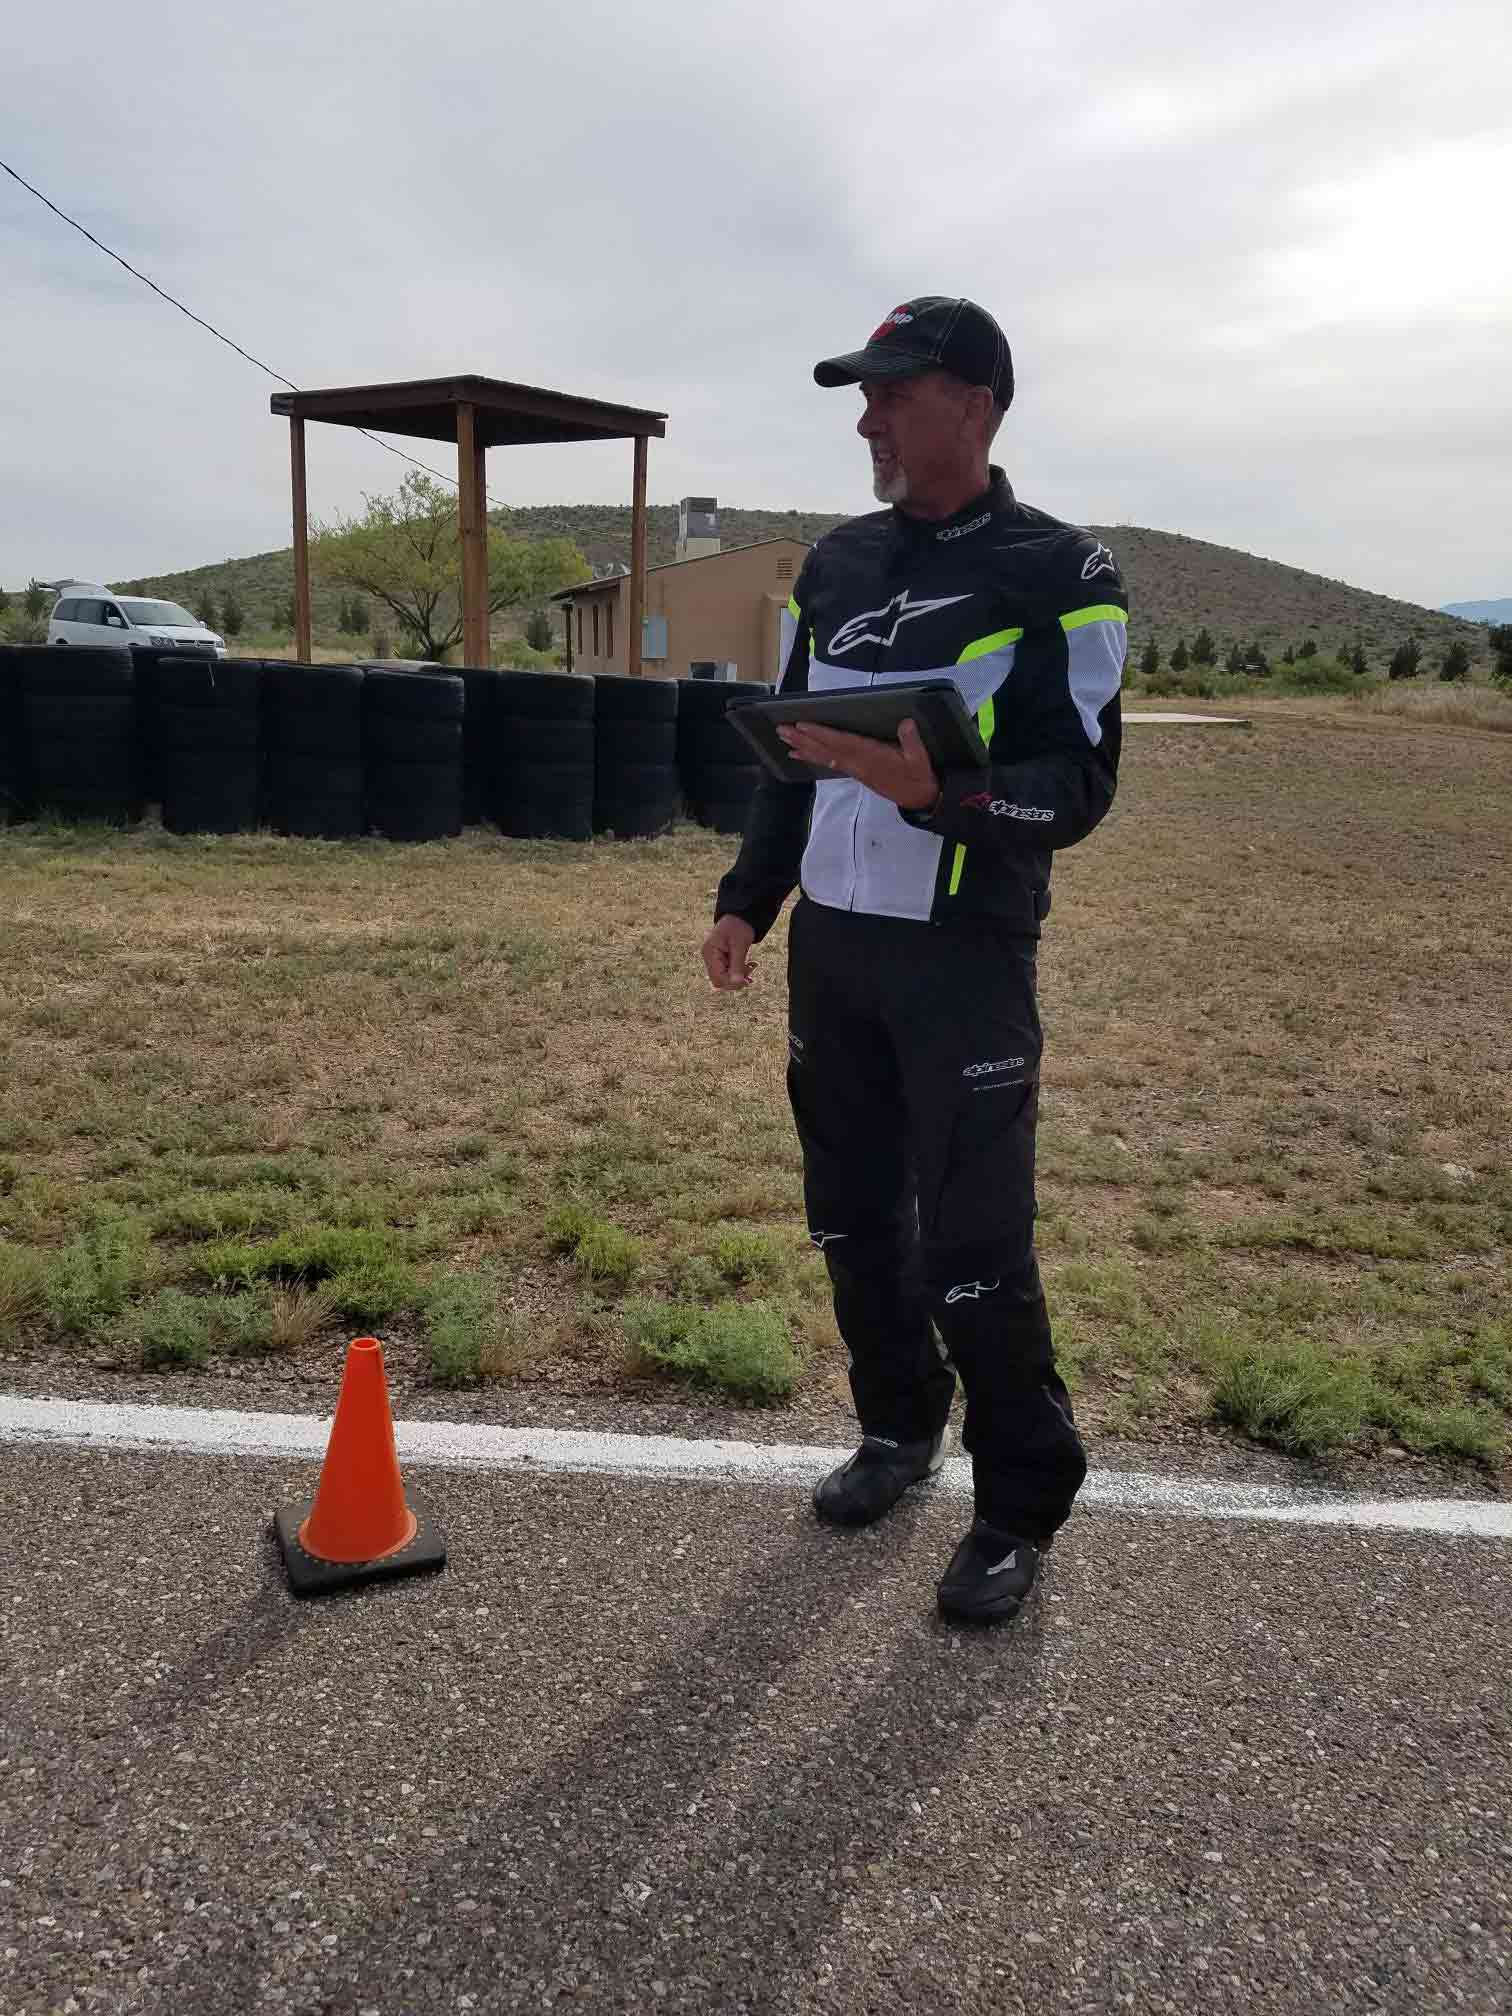 Mark Schellinger with his iPad practicing lines for the Pointy End drill in between Inde's turns 5 and 6.